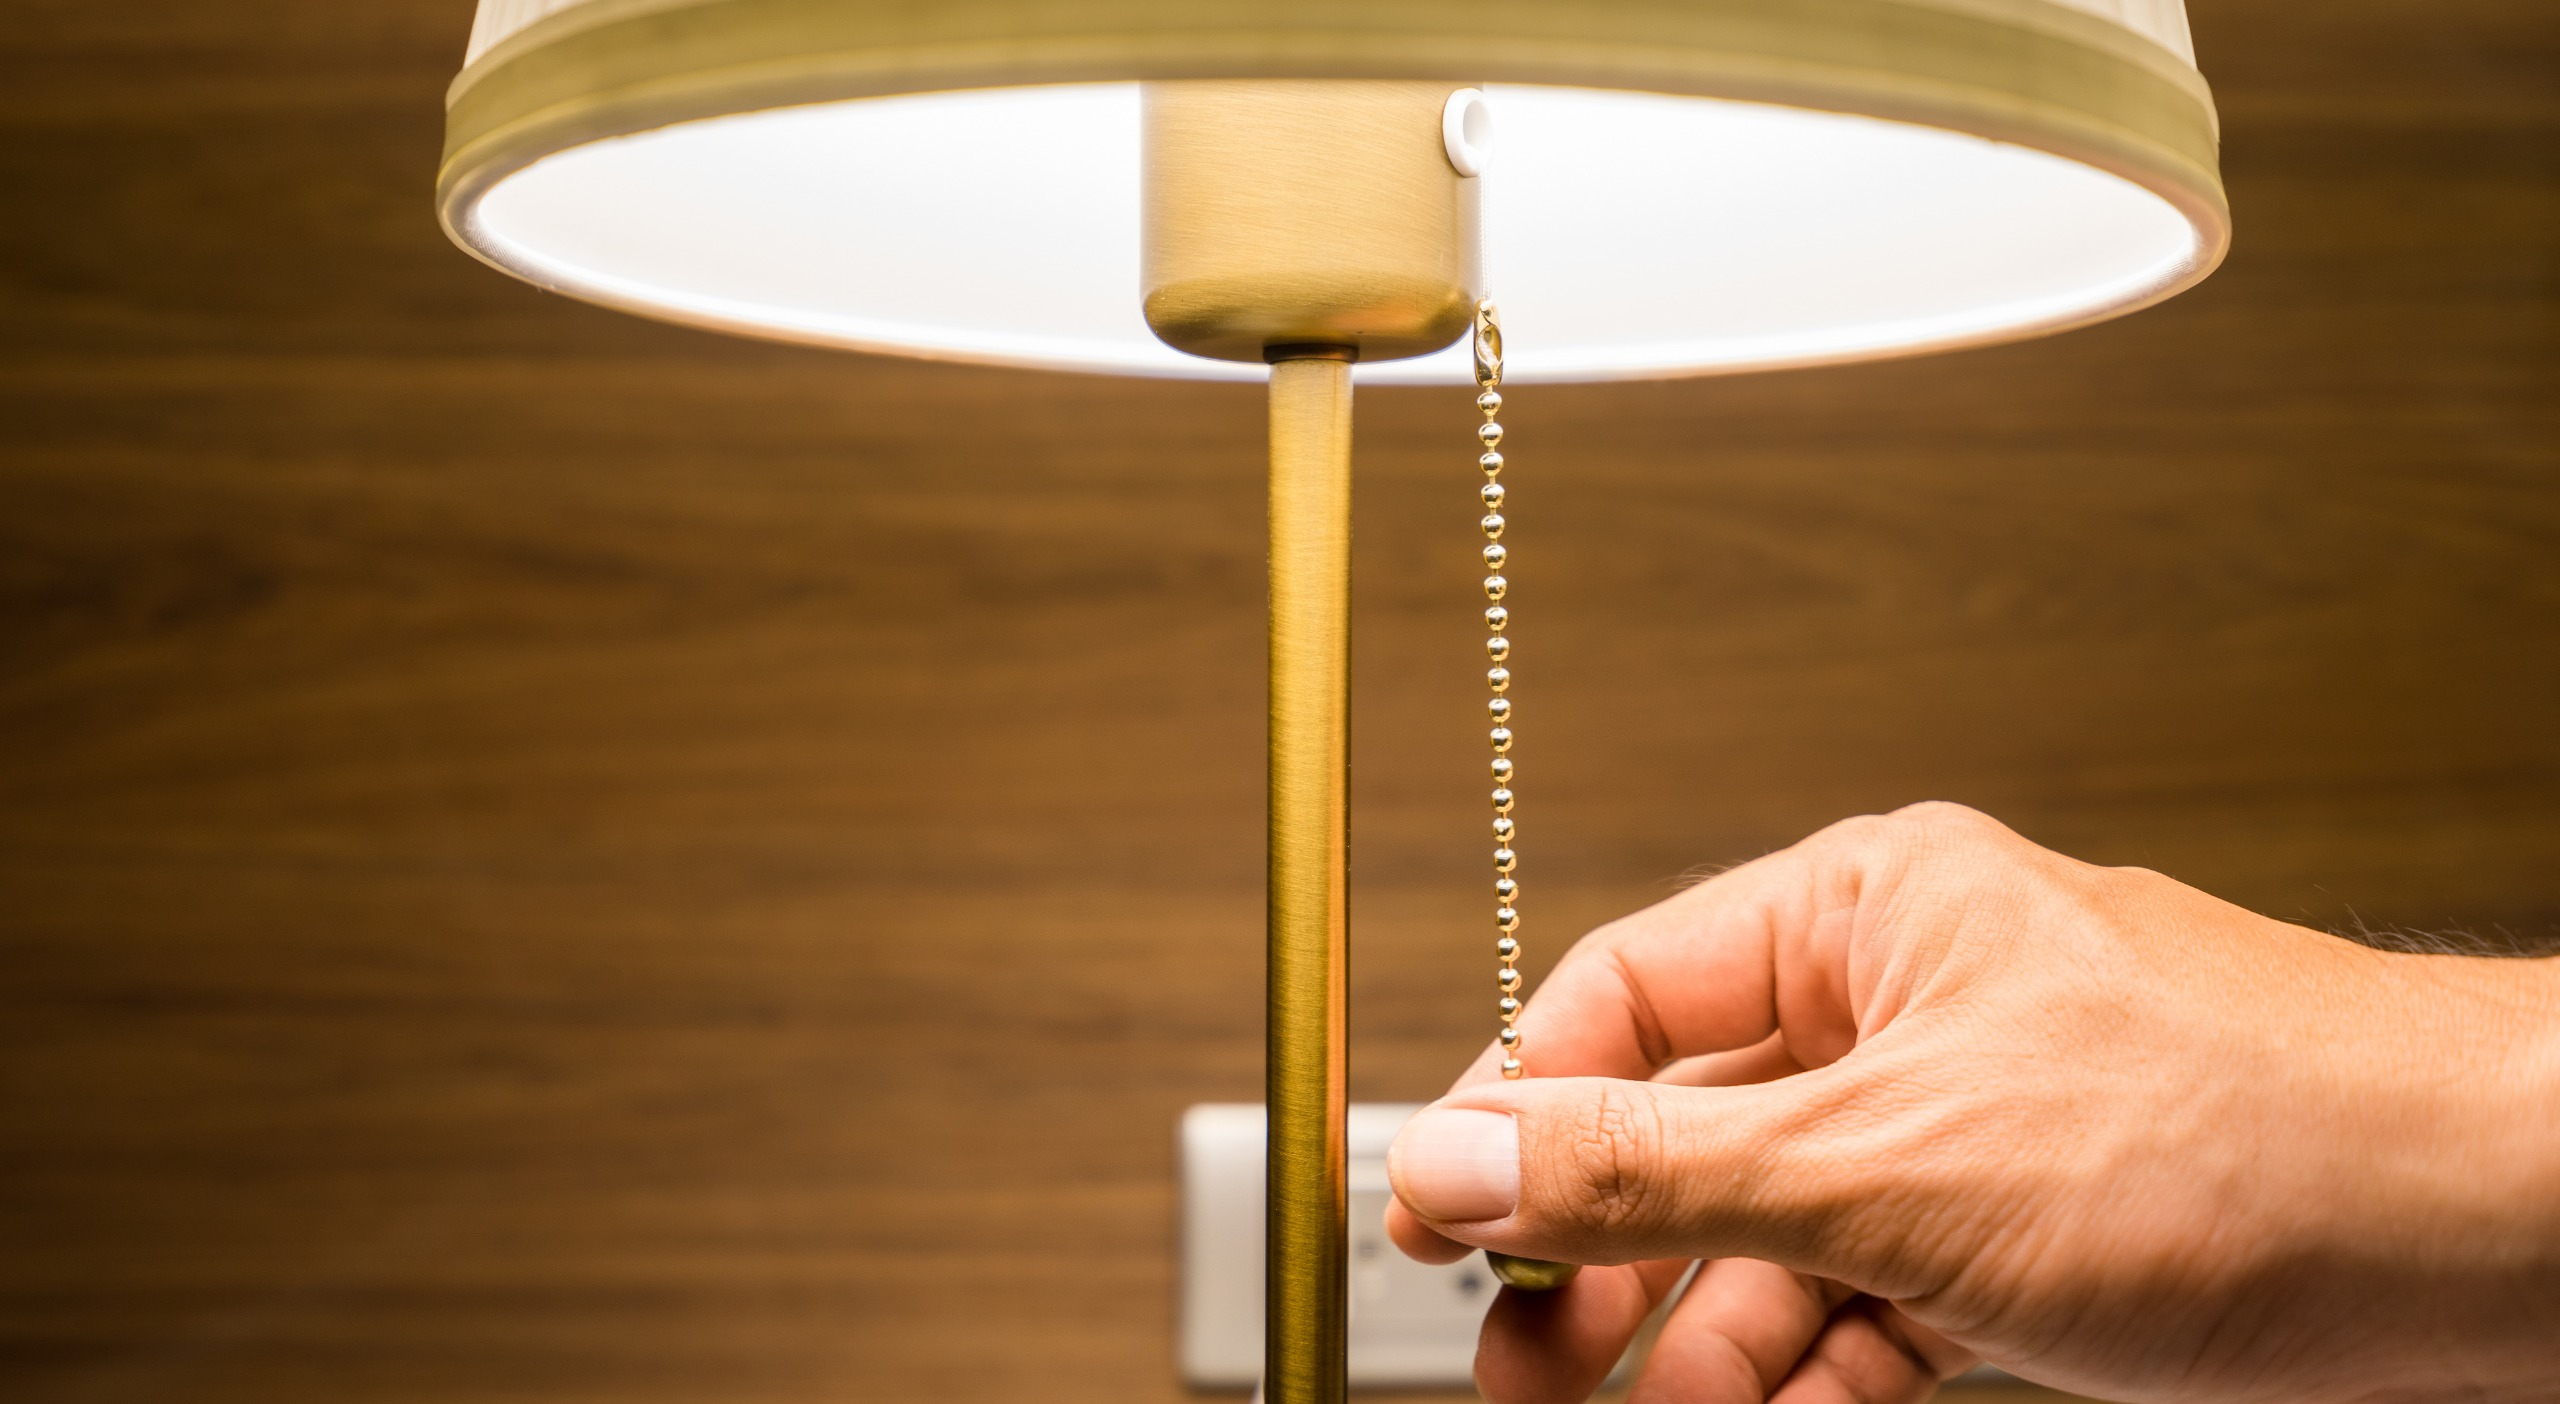 How To Measure A Lamp Harp: Lamp Proportions And More